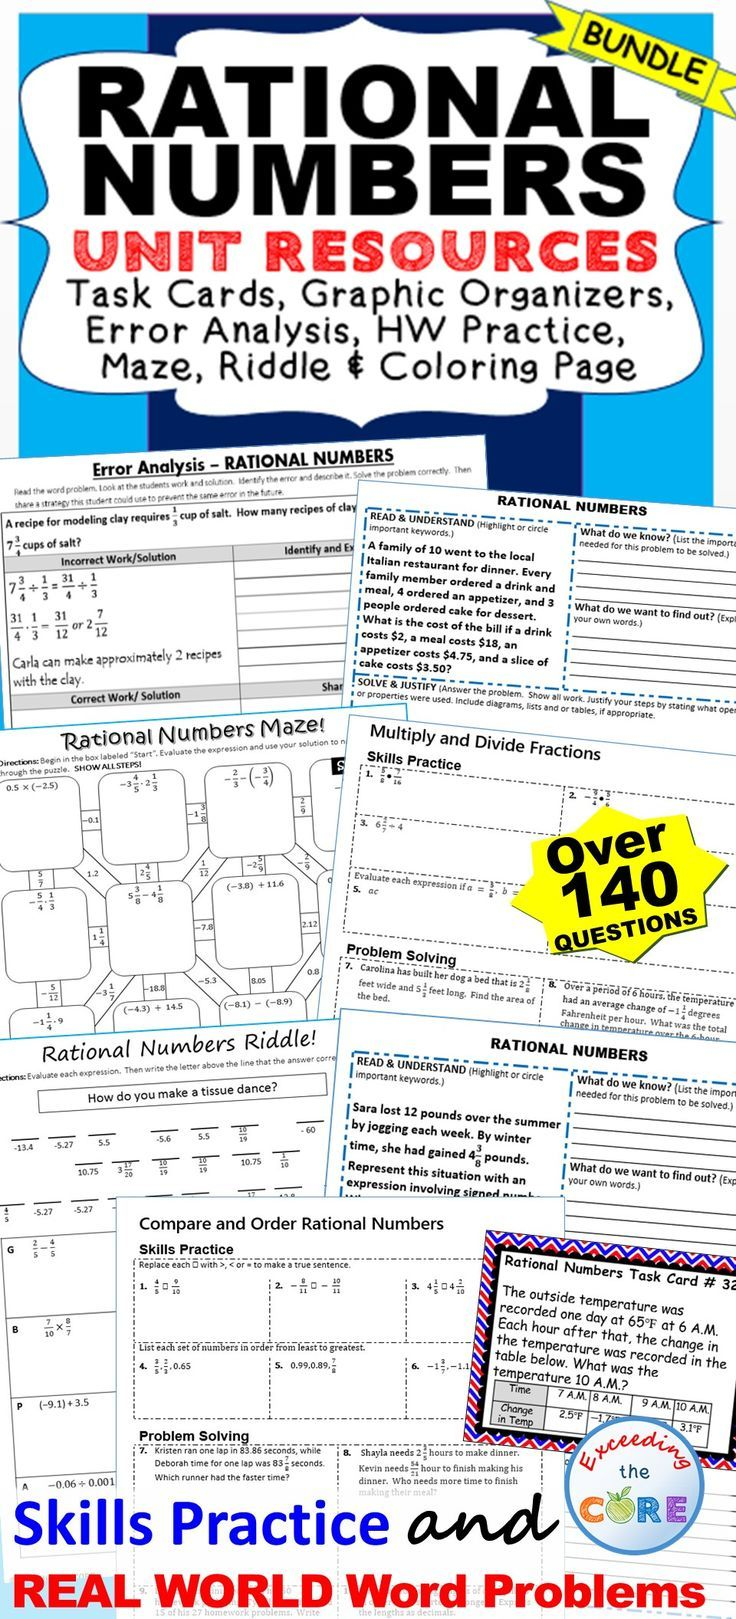 RATIONAL NUMBERS BUNDLE Task Cards, Error Analysis, Problem Solving ...